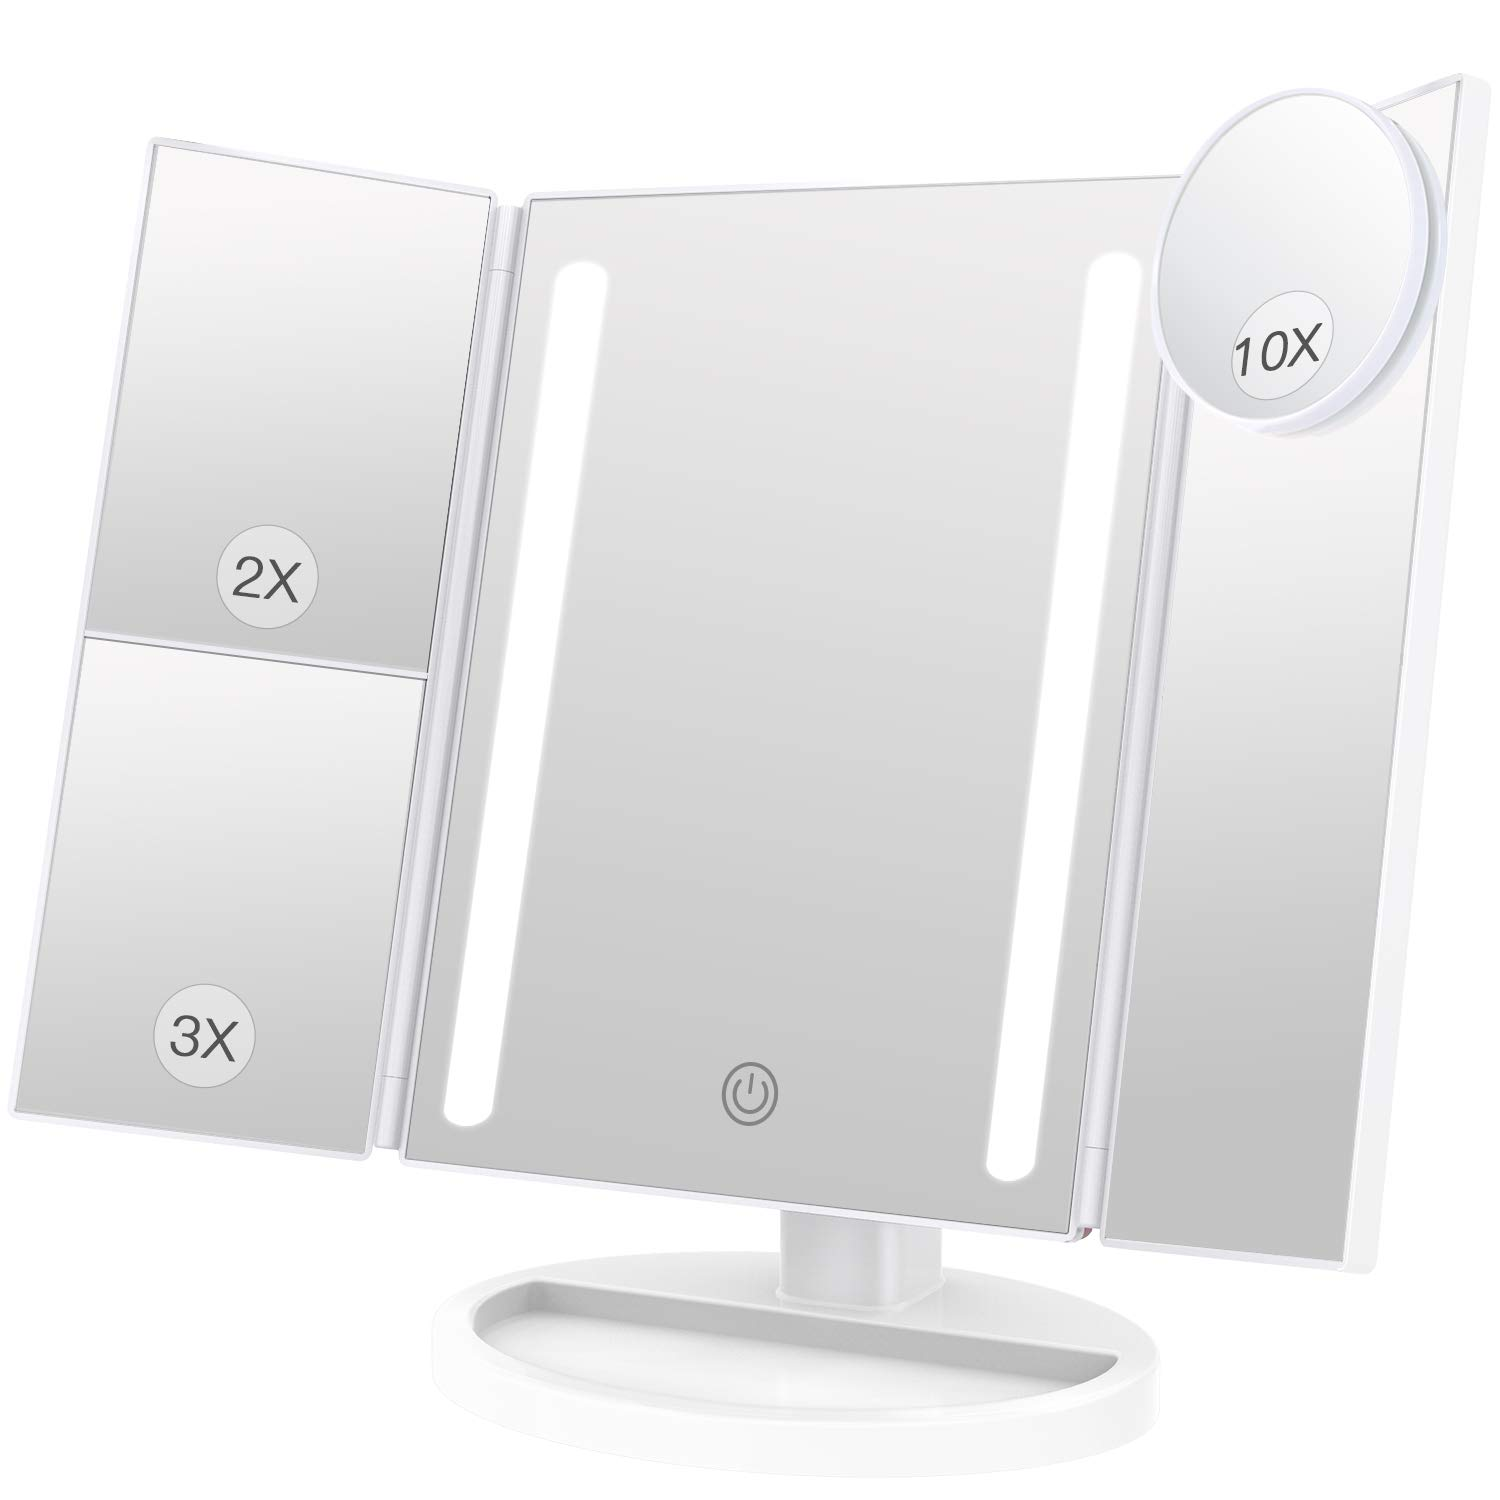 BESTOPE 24 LED Makeup Vanity Mirror with 3X/2X Magnification,Detachable 10X Magnifying Mirror,Touch Screen, 180°Adjustable Rotation, Dual Power Supply, Countertop Costmetic Mirror 180°Adjustable Rotation BESTOPE CA